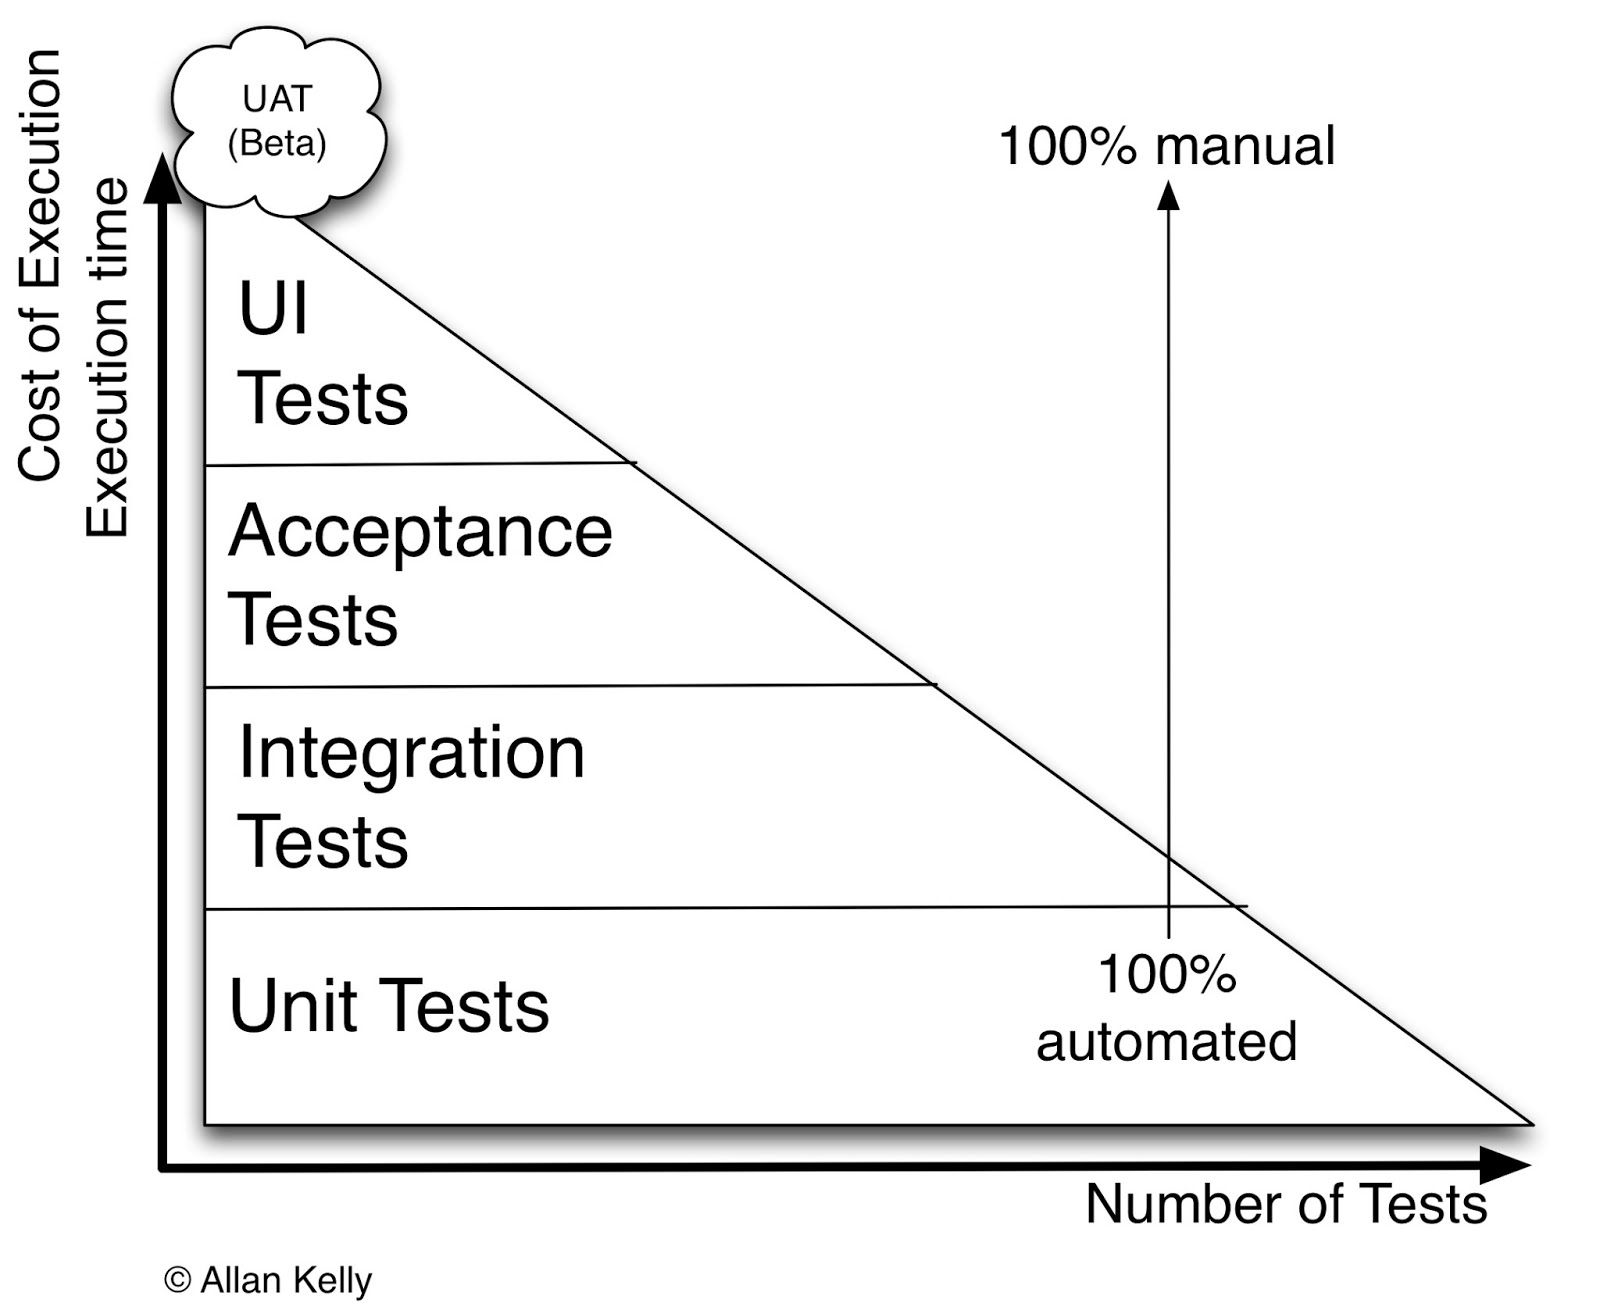 medium resolution of uat diagram